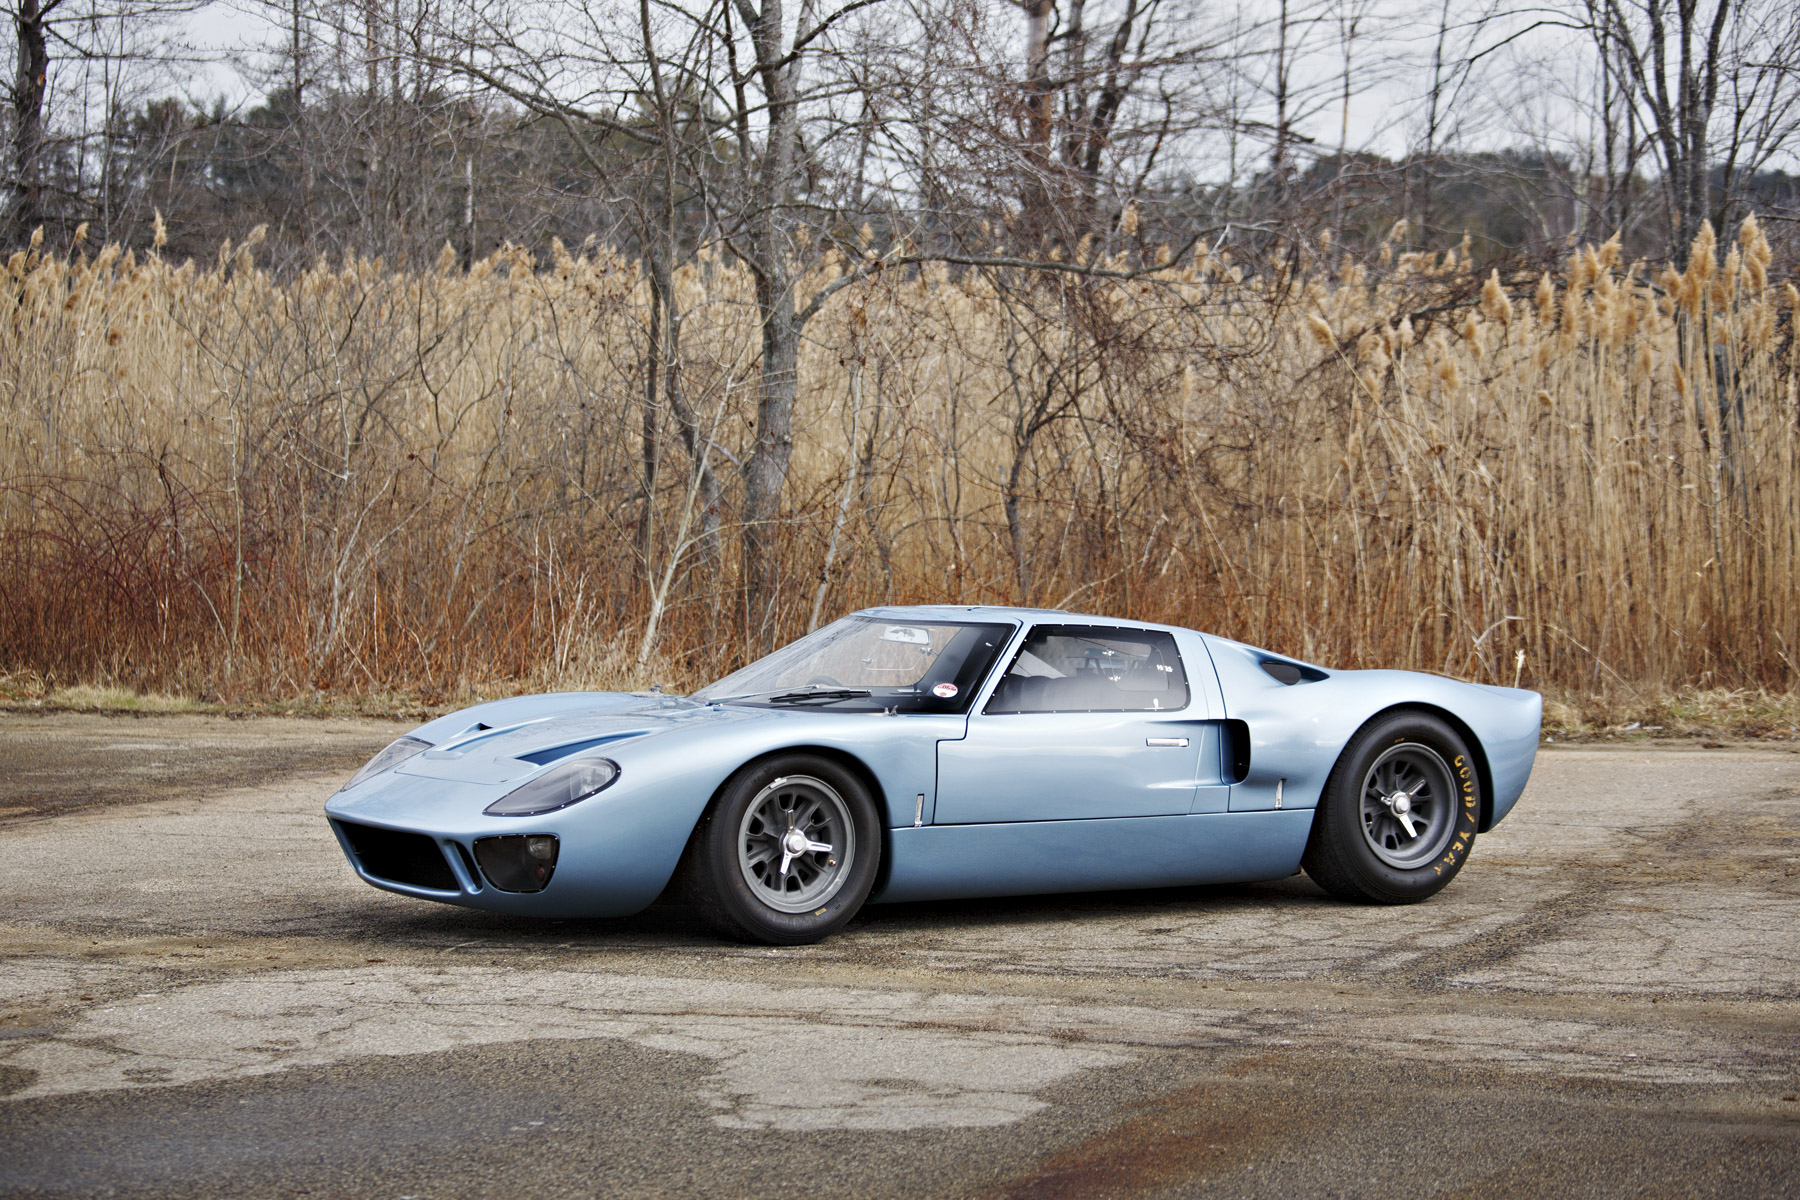 $3,300,000— 1966 Ford GT40 Mk I Coupe